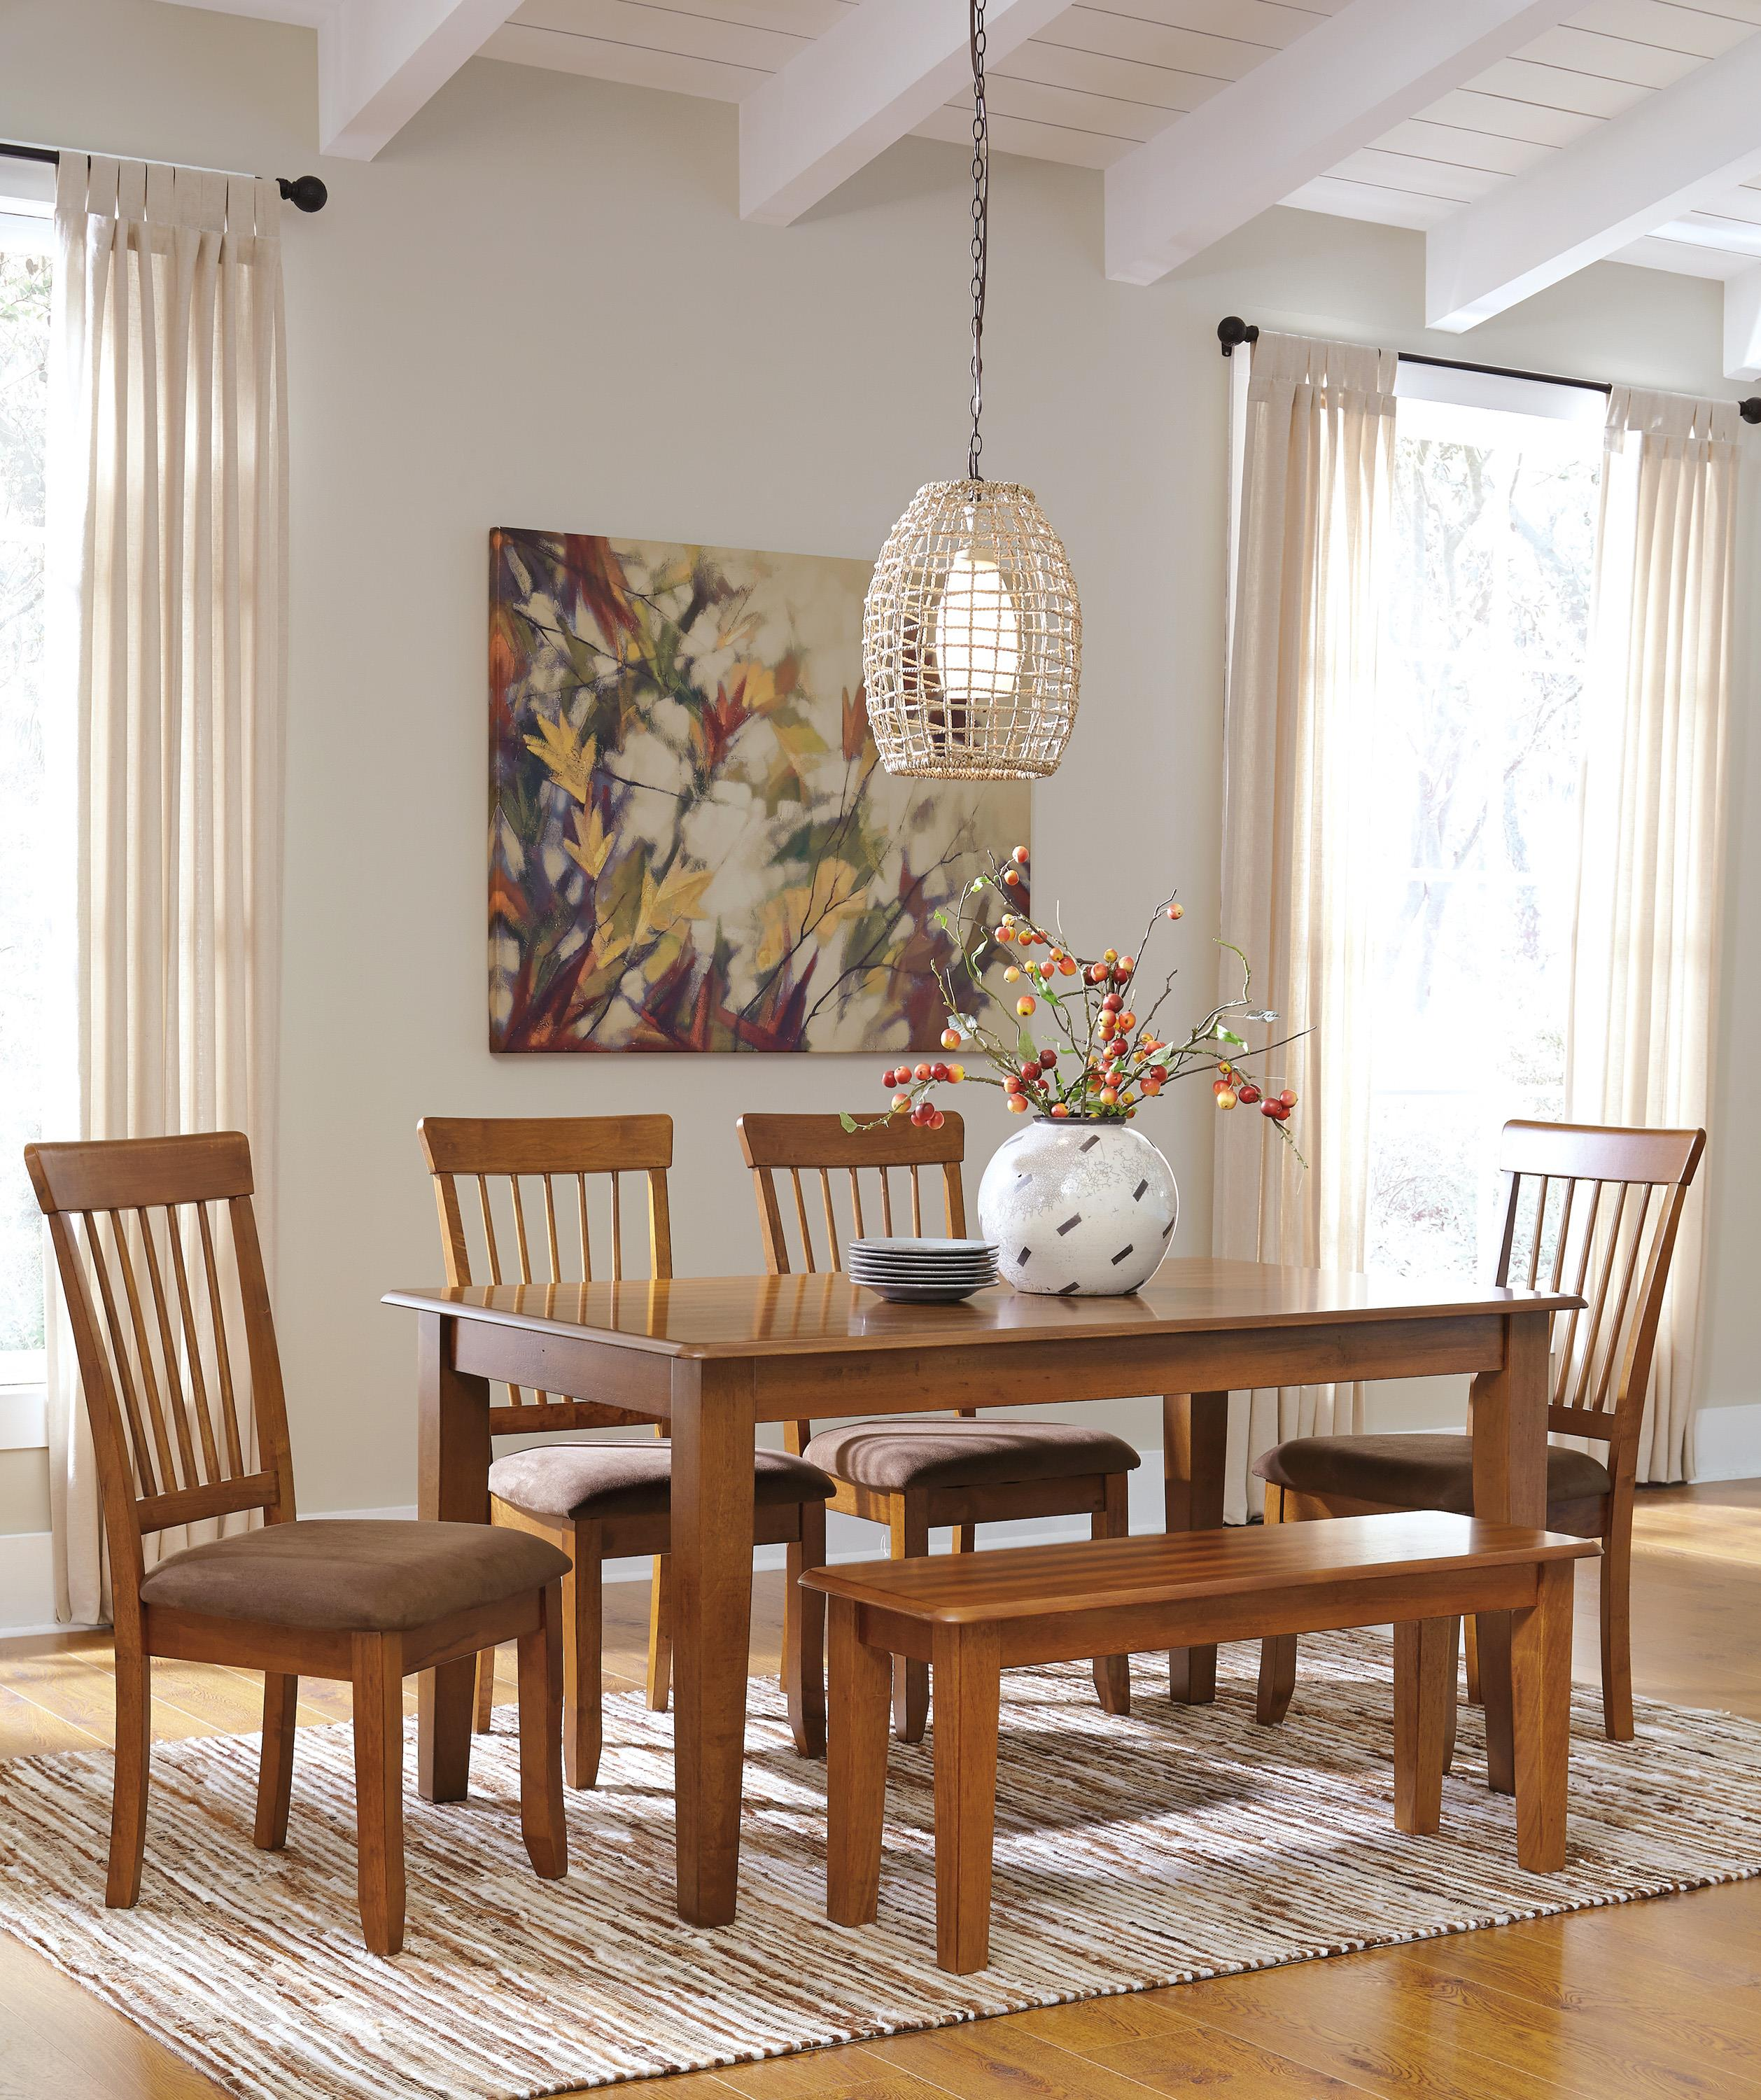 Ashley Furniture Berringer Hickory Stained Hardwood Round Drop Leaf Table    Rooms And Rest   Kitchen Tables Part 69